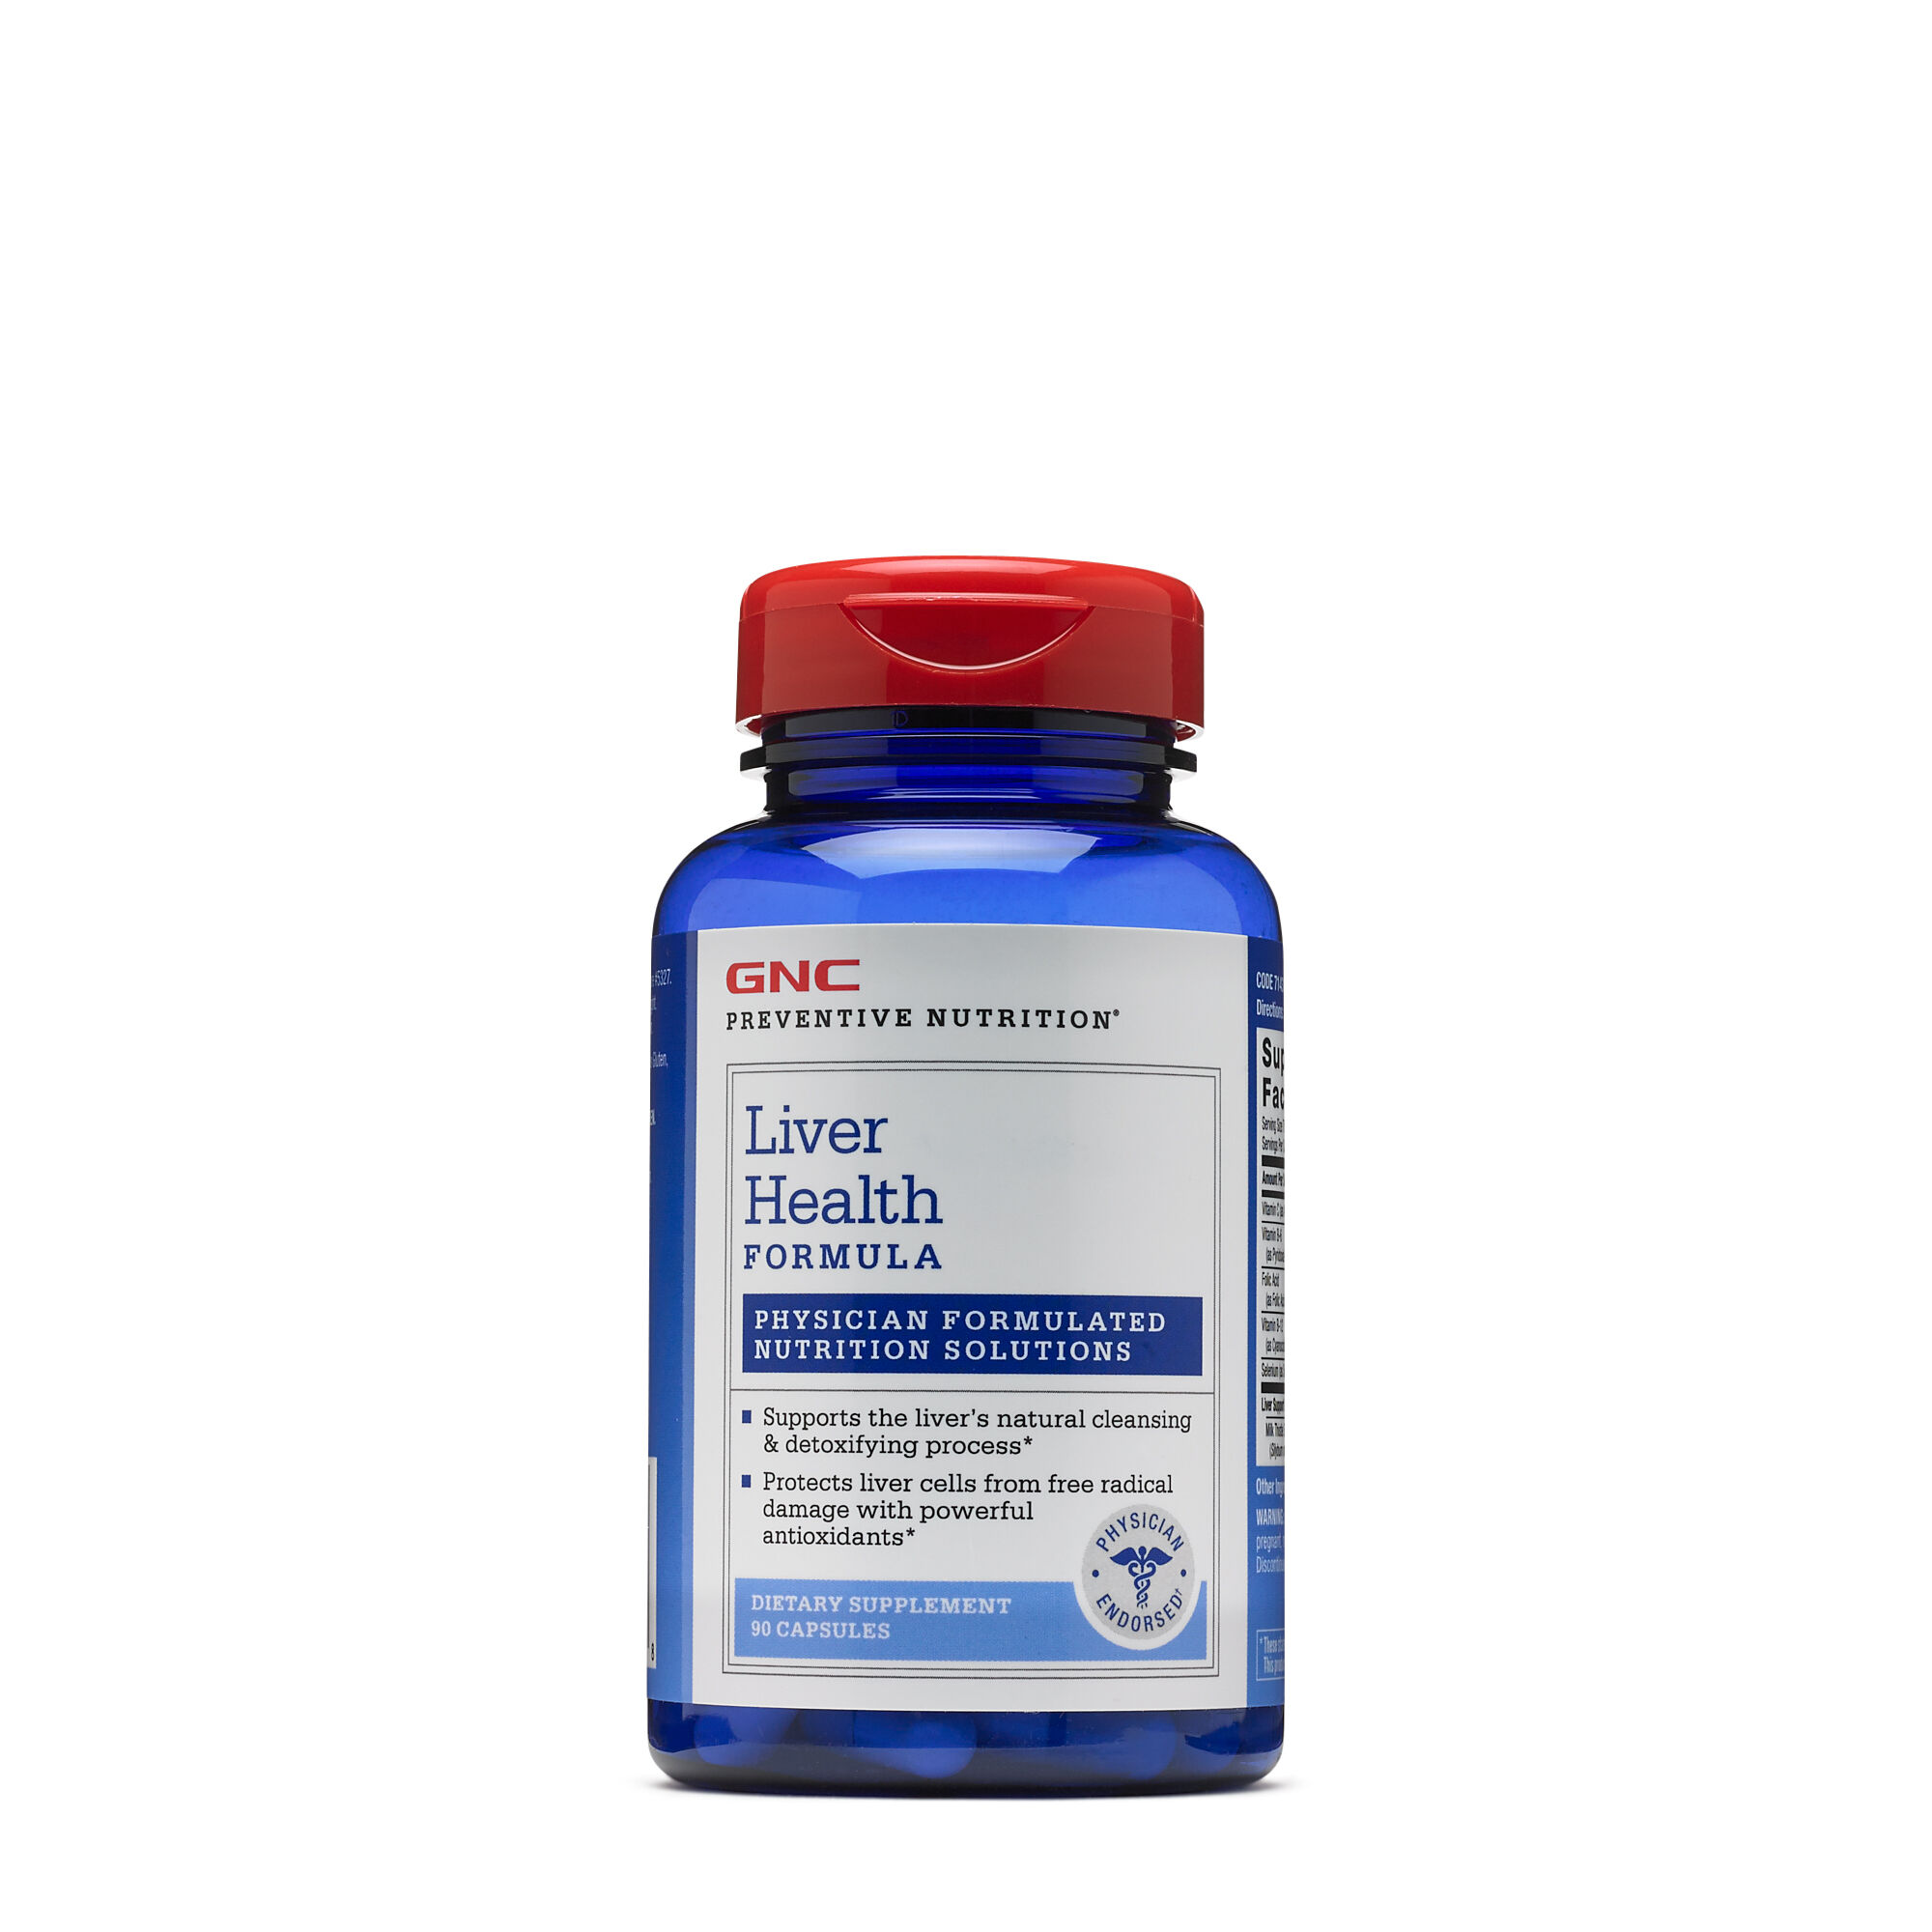 GNC Preventive Nutrition® Liver Health Formula